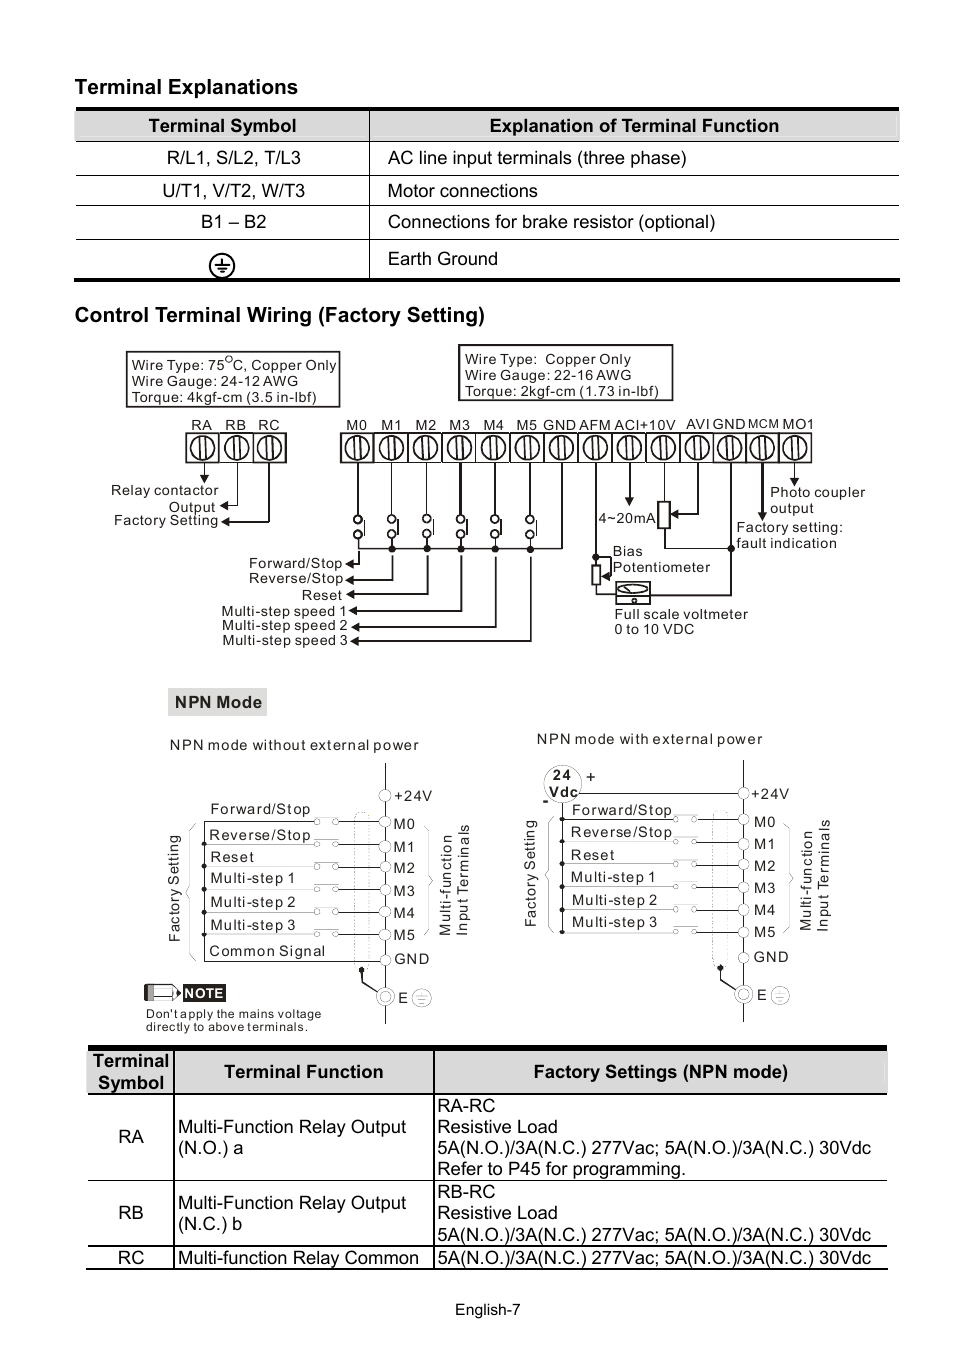 medium resolution of terminal explanations control terminal wiring factory setting delta electronics ac motor drive vfd xxxm user manual page 7 22